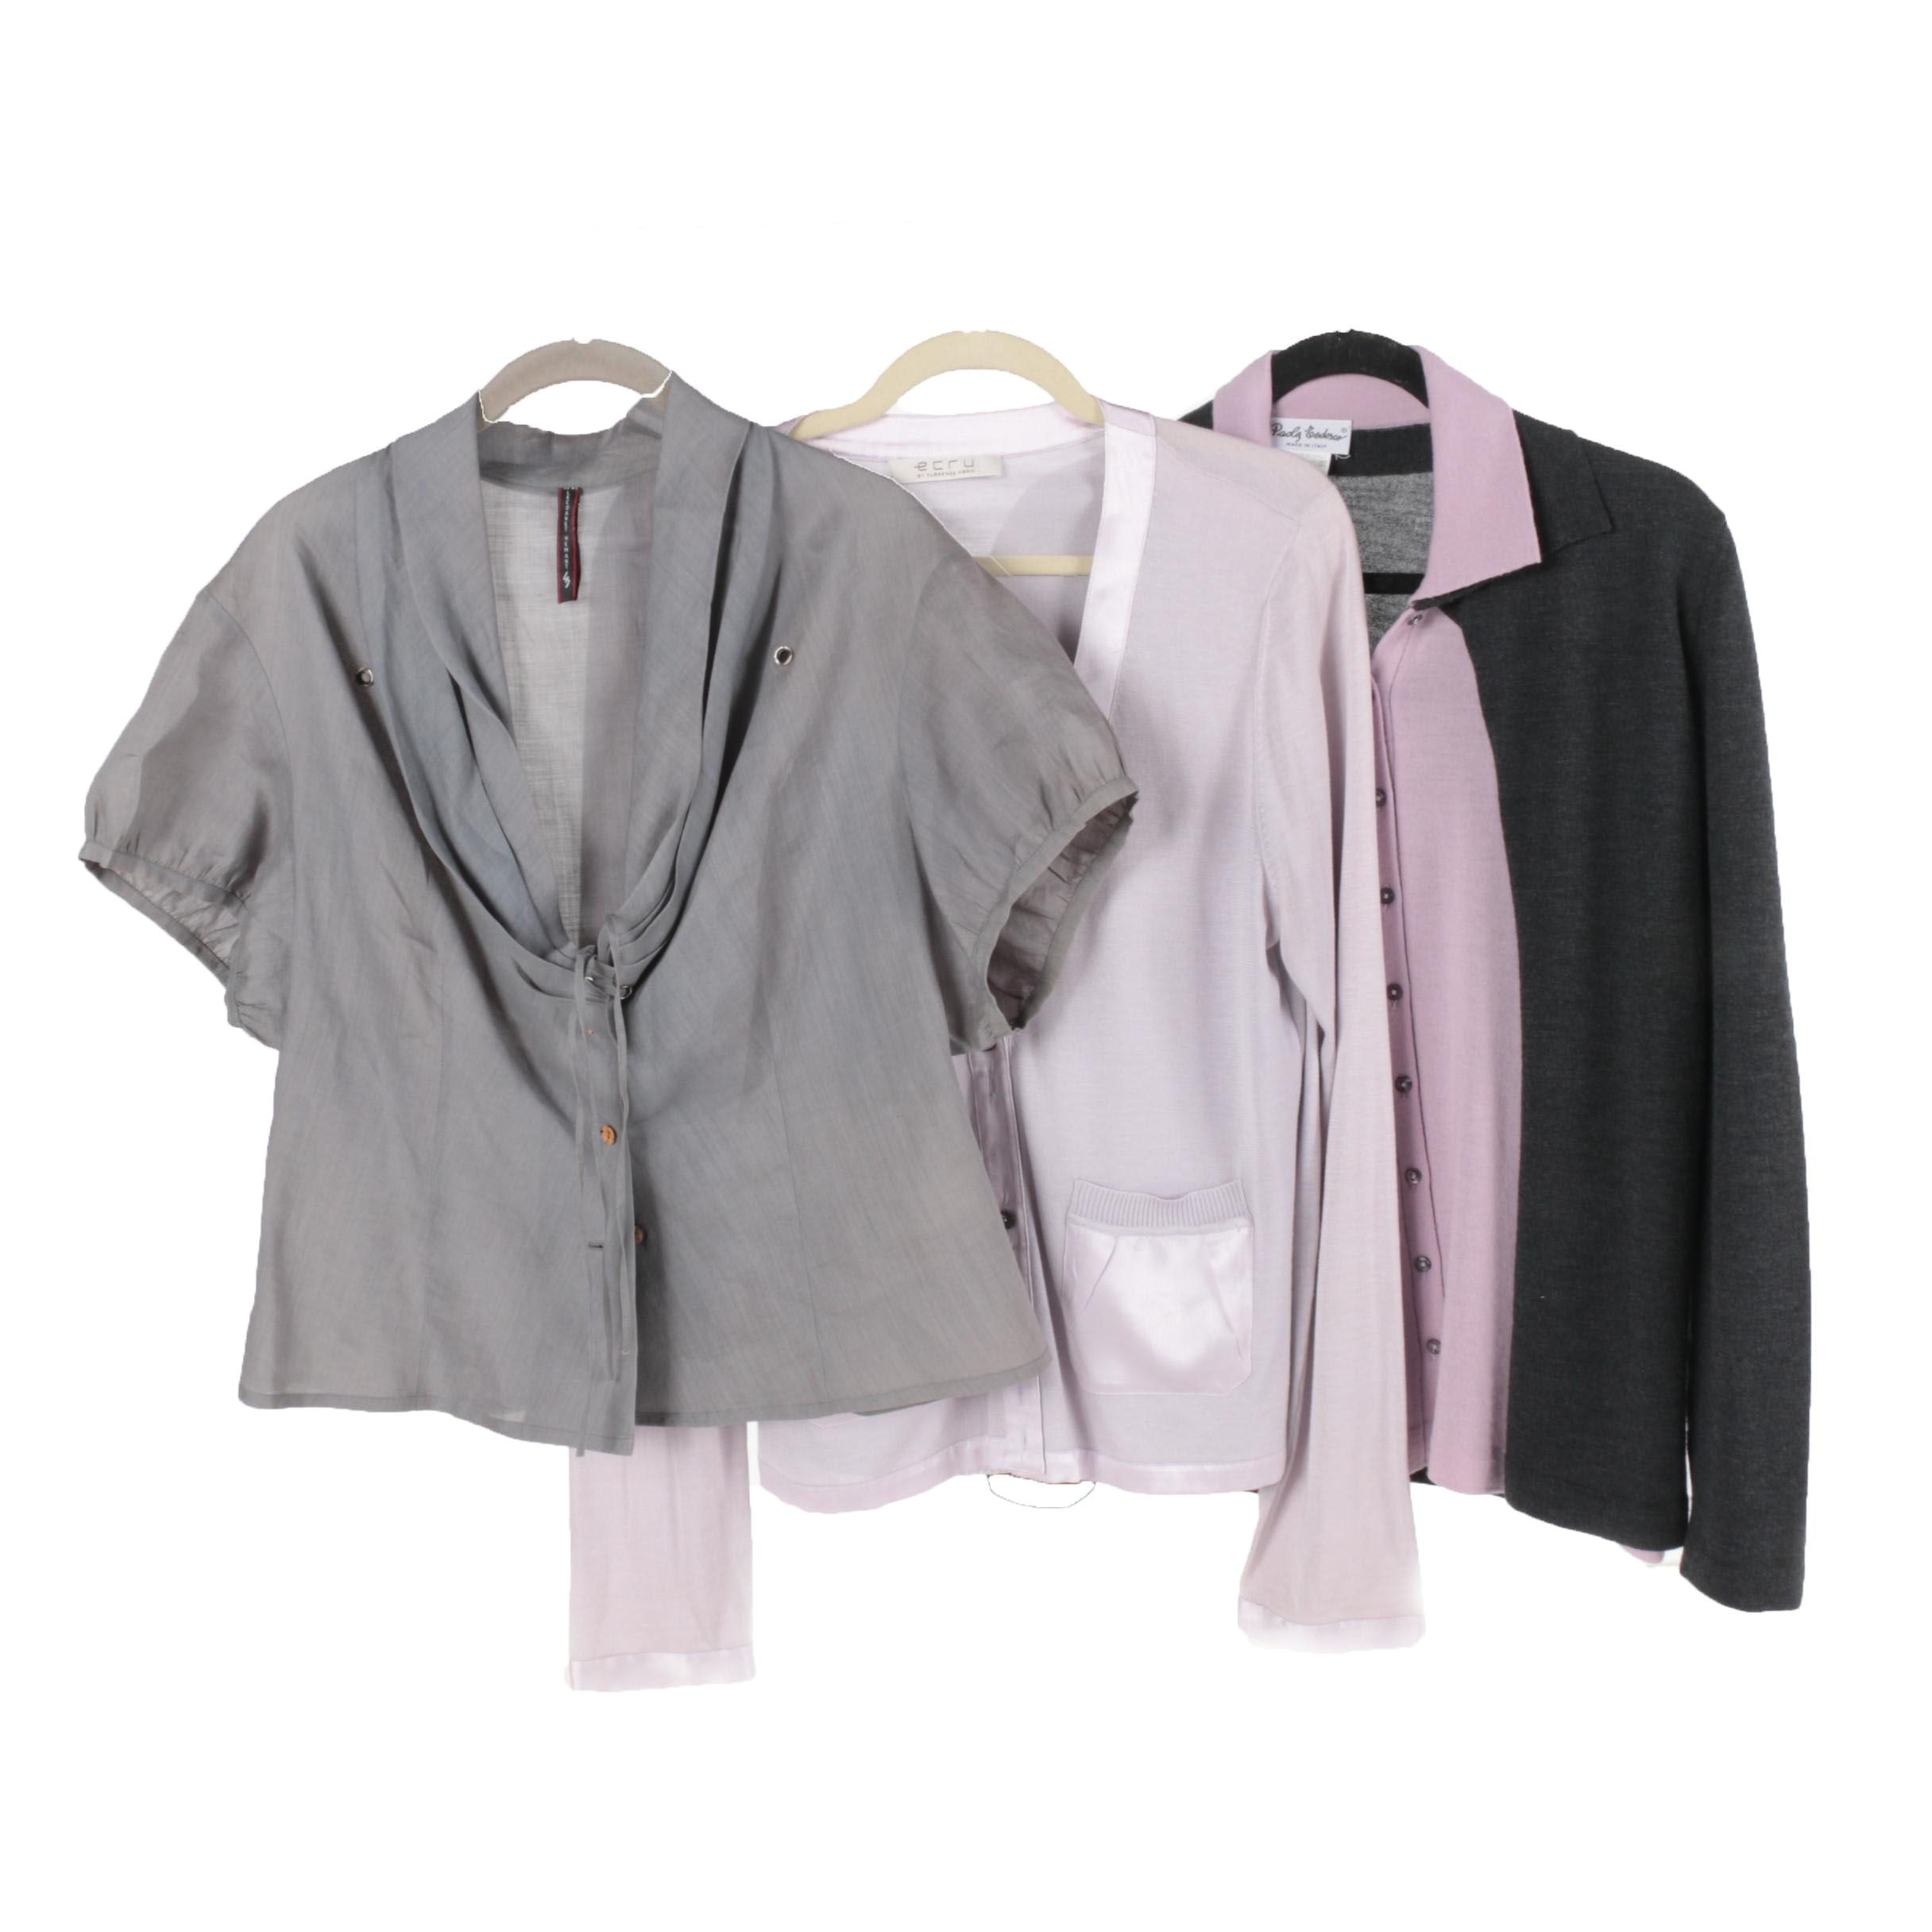 Wool, Linen and Silk Blouses Including Lecoanet Hemant